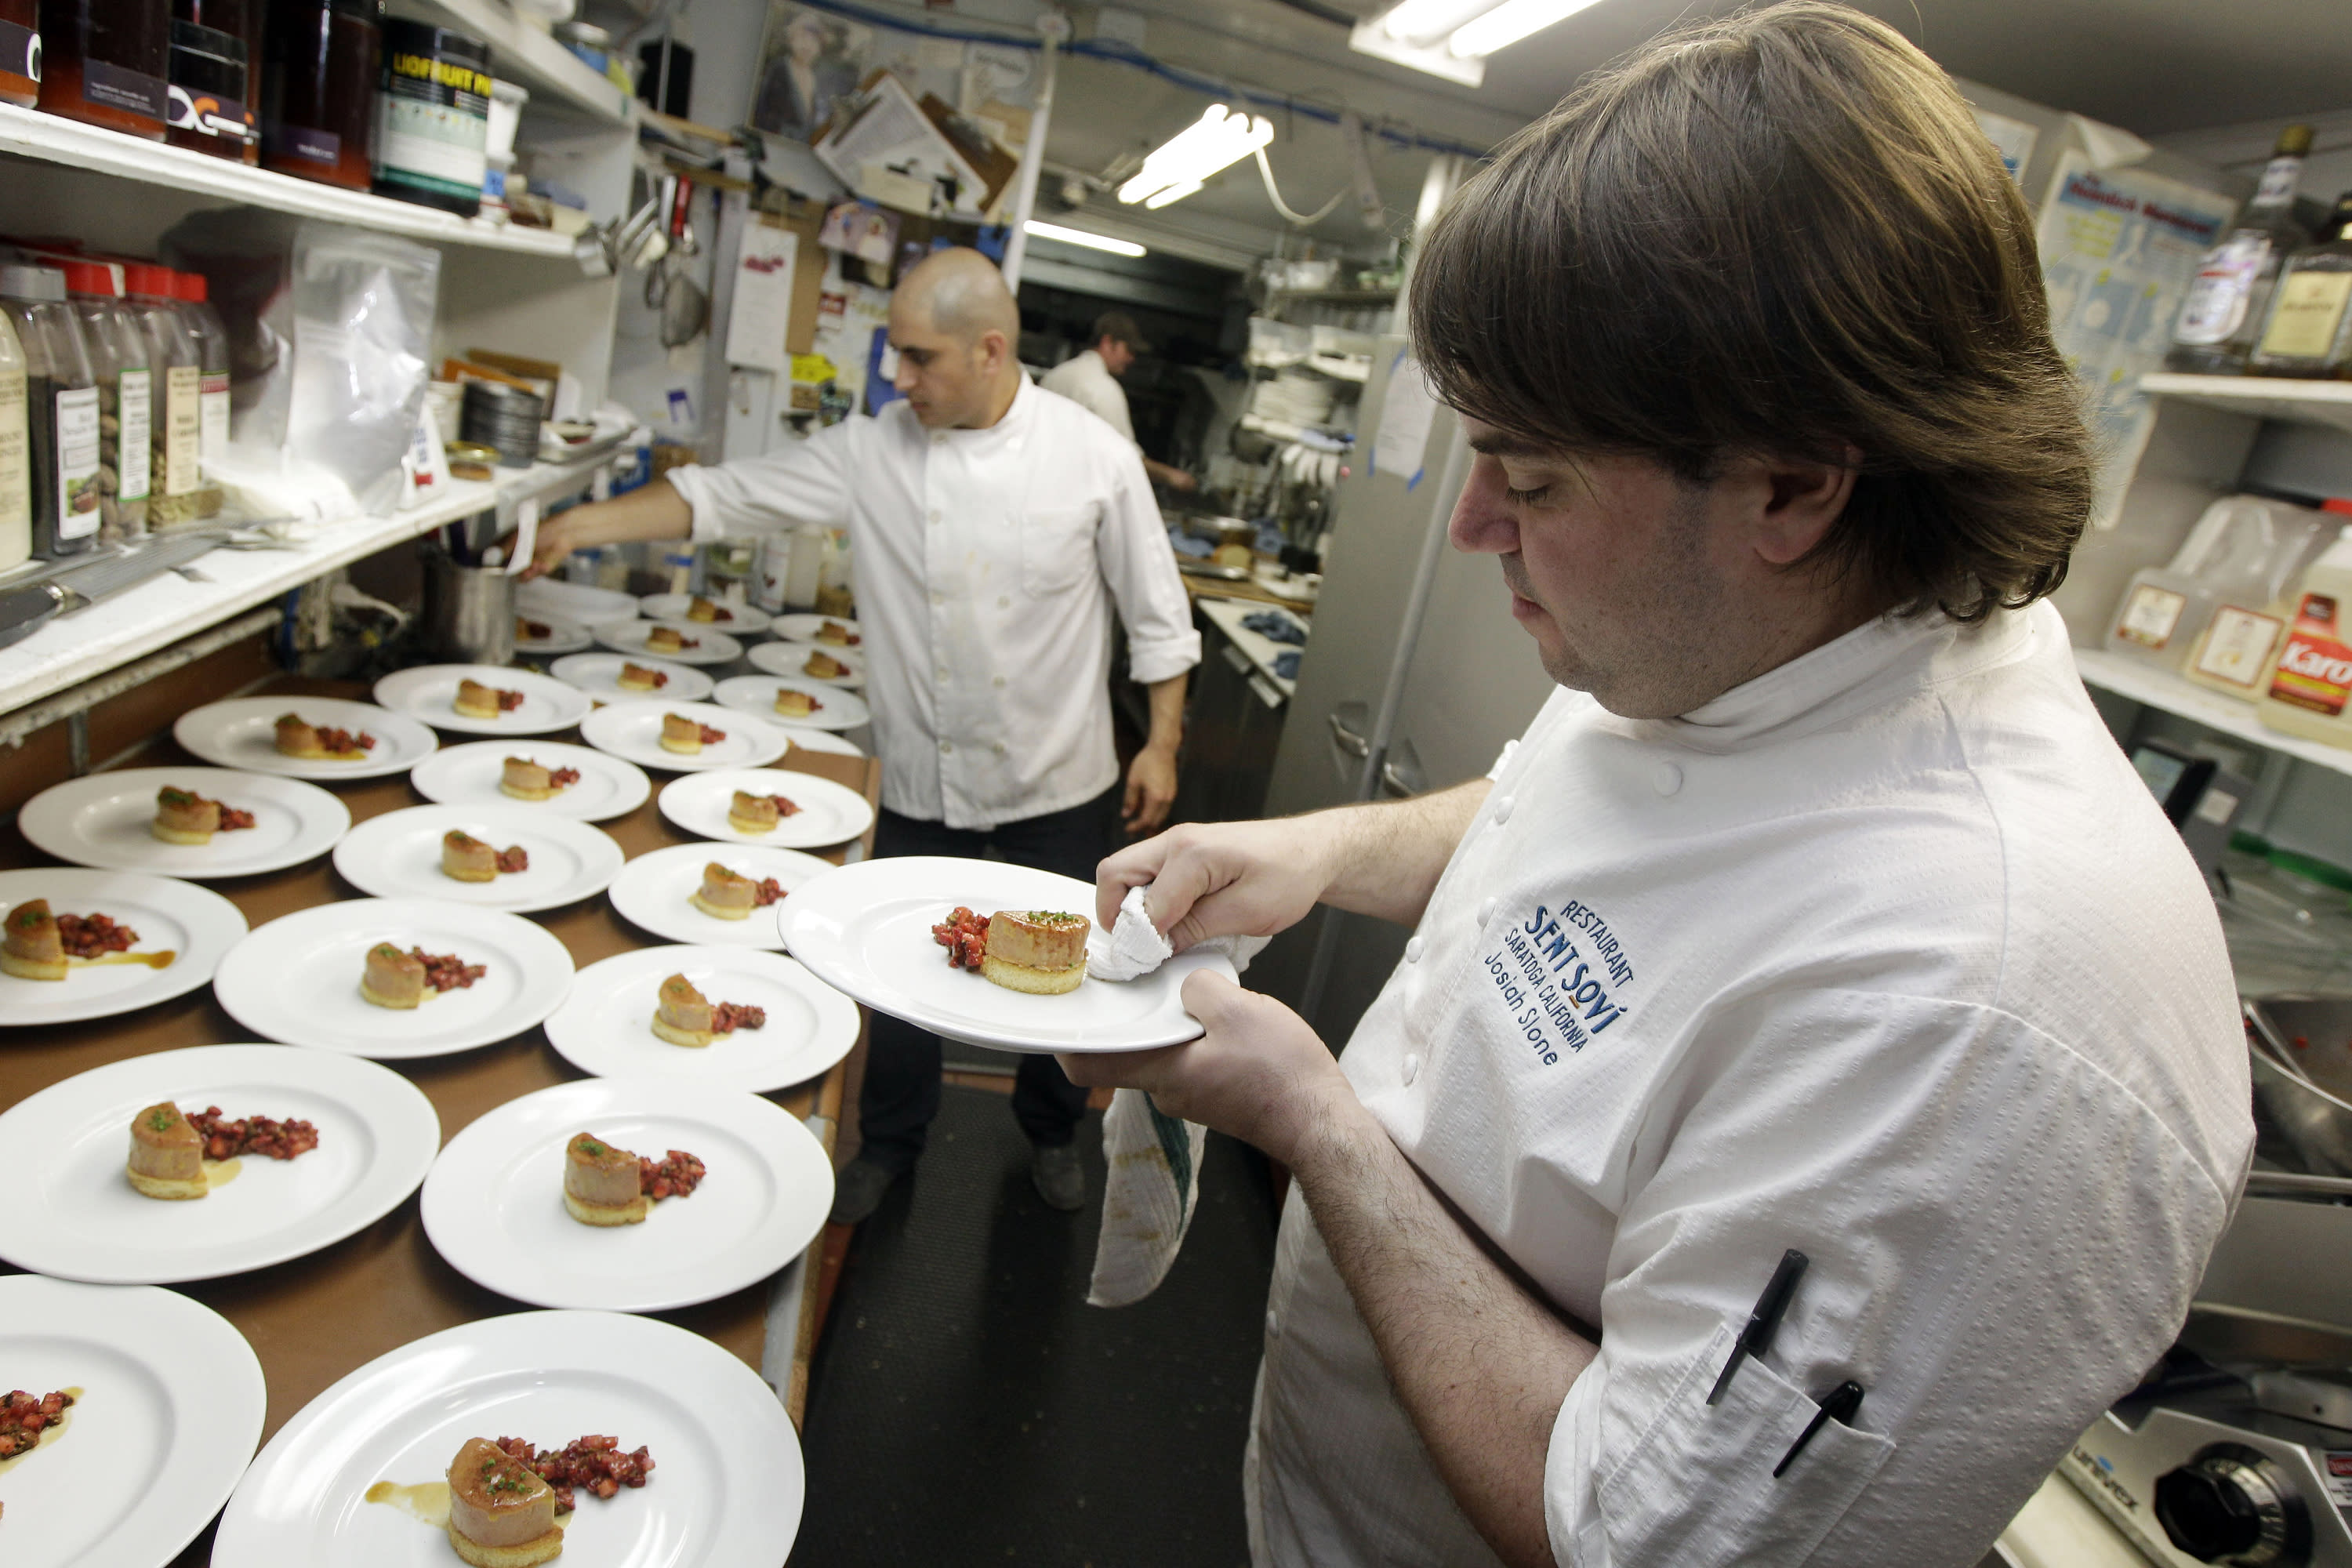 FILE - In this May 11, 2012, file photo, chef and owner Josiah Slone, right, prepares a foie gras dish at Sent Sovi restaurant in Saratoga, Calif. Foie gras is back on the menu in California after a judge ruled the rich dish can't be prevented from being brought in from out of state. California's ban on the delicacy, the fattened liver of a duck or goose, was challenged by out-of-state producers. An appeals court upheld the ban, but on Tuesday, July 14, 2020, a judge ruled for the plaintiffs, including farmers in Canada and New York. (AP Photo/Marcio Jose Sanchez, File)